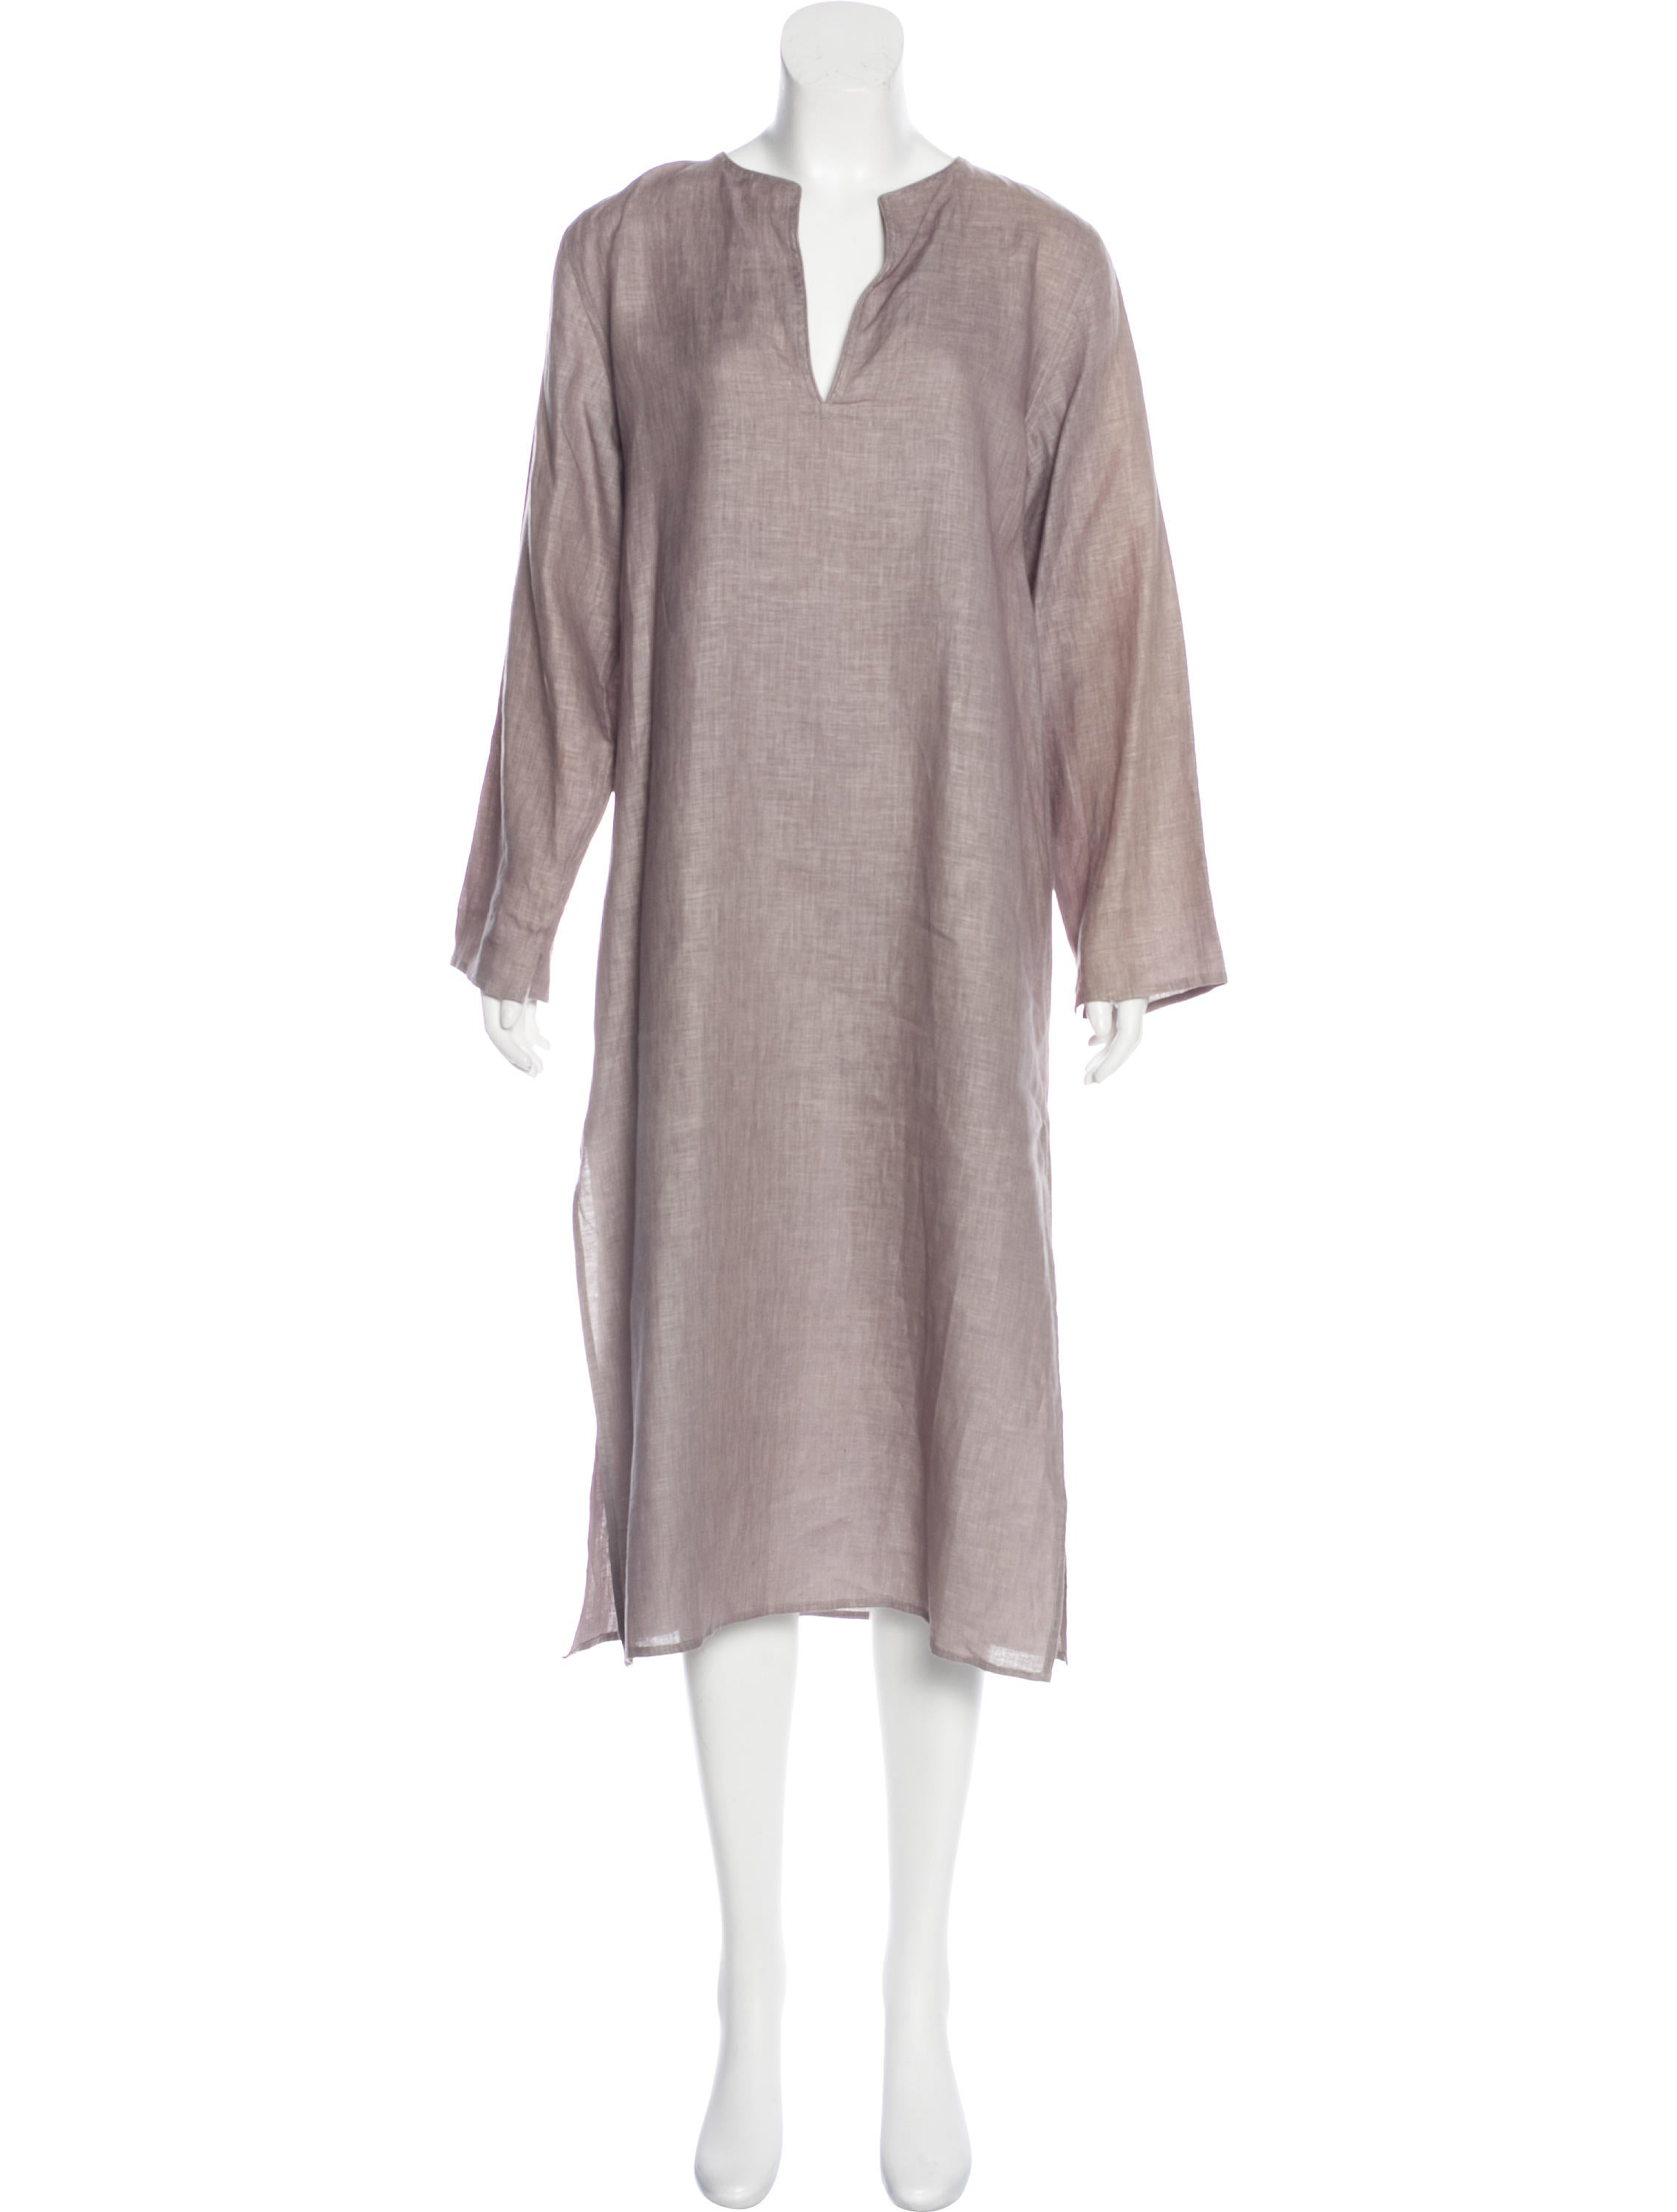 dd5daca1975 Denis Colomb Long Sleeve Linen Dress w  Tags - Clothing - WDC20054 ...